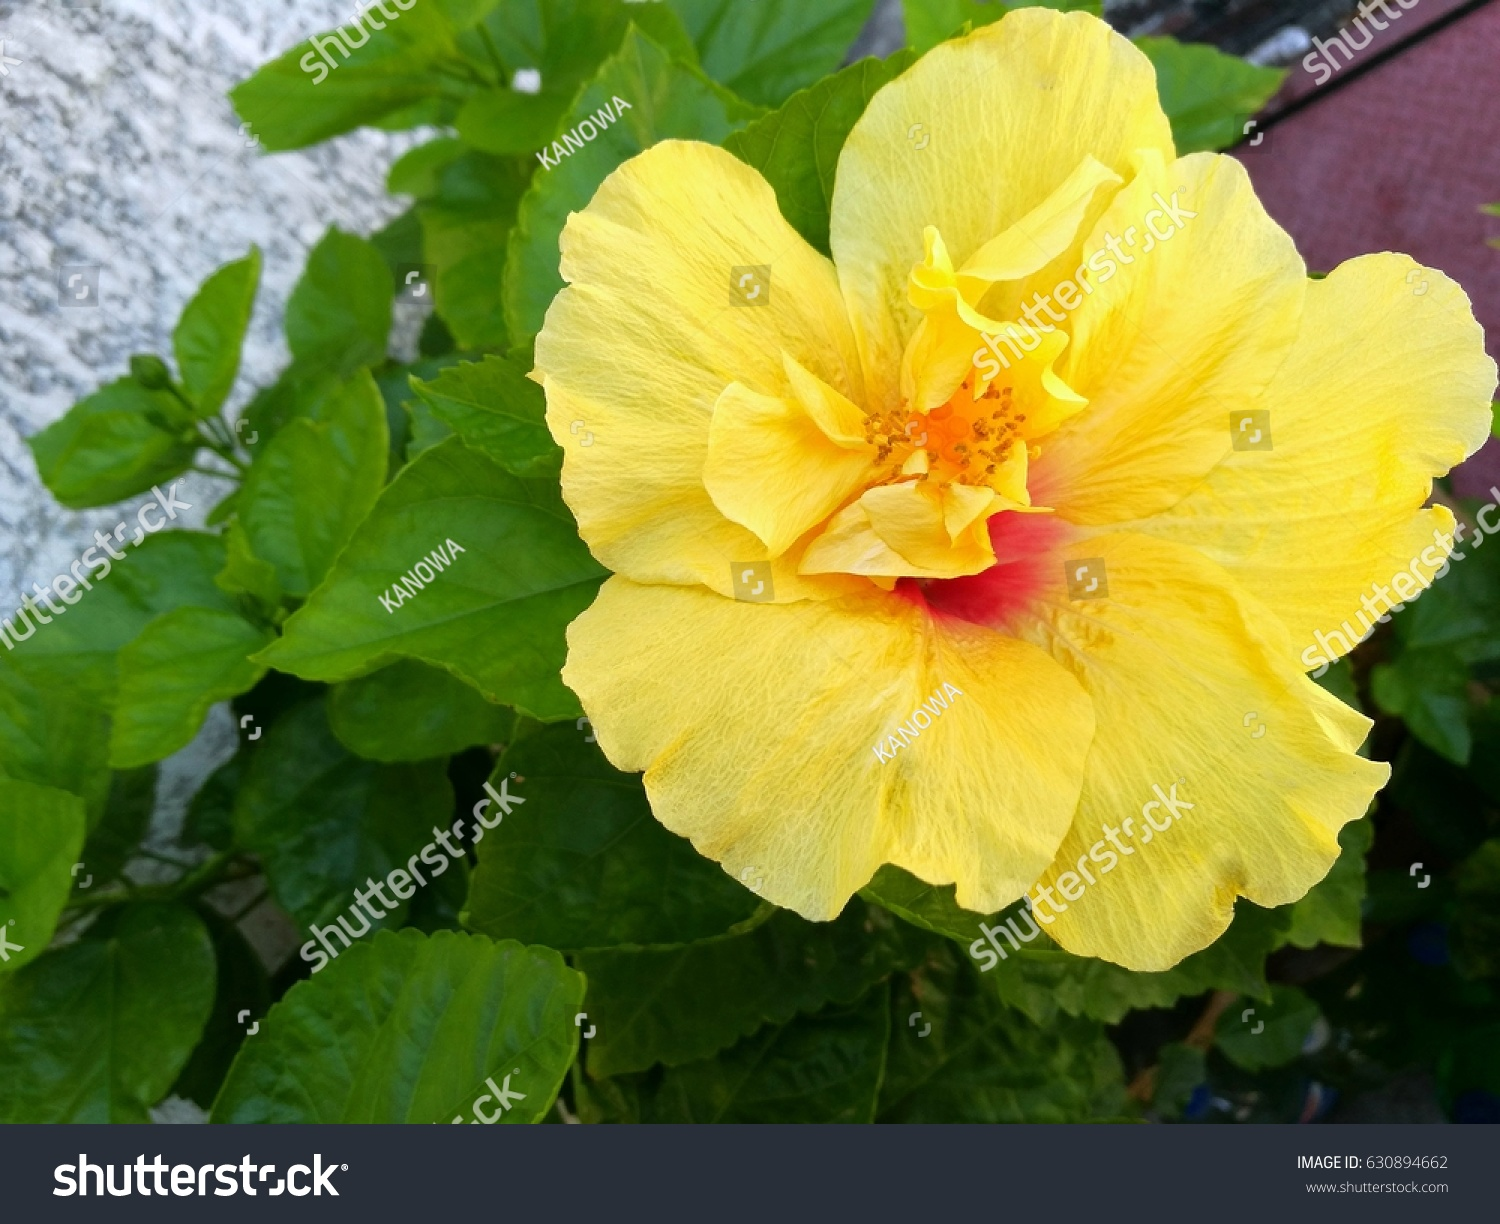 Hibiscus Yellow Flower On Leaves Green Backgroundtop View Ez Canvas